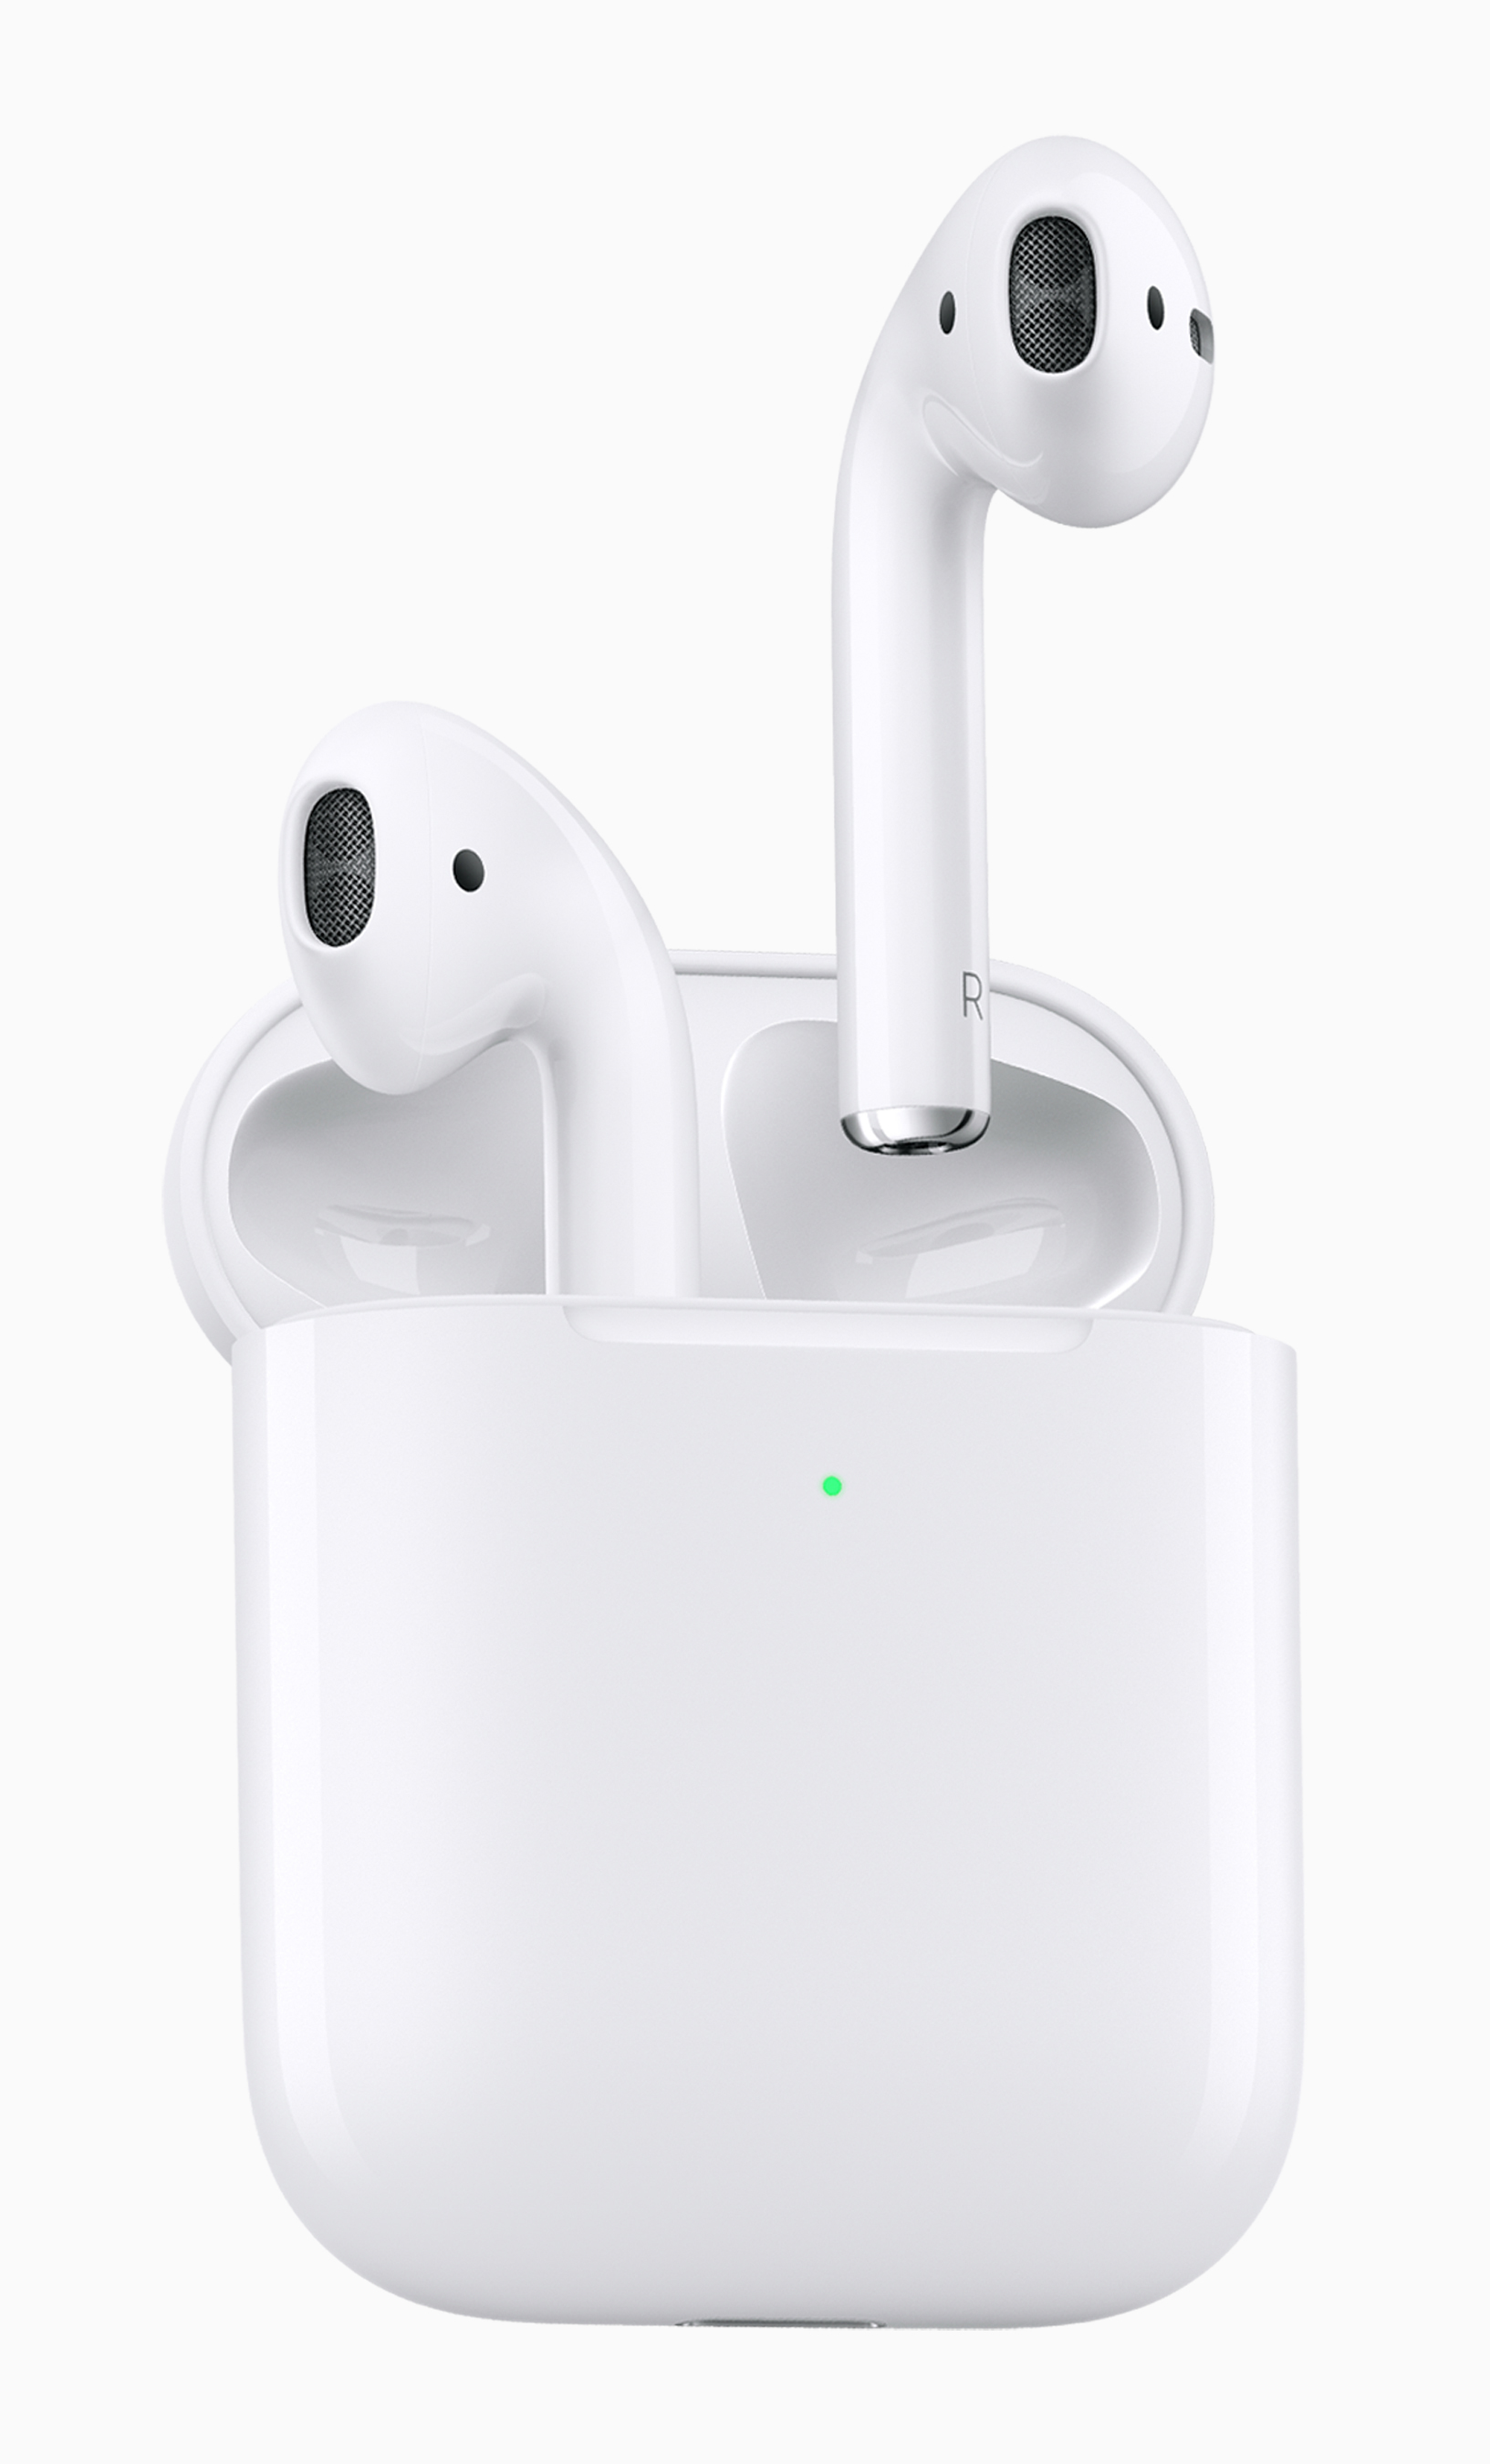 Apple Offers Free Airpods For Back To School Touts Wearable As